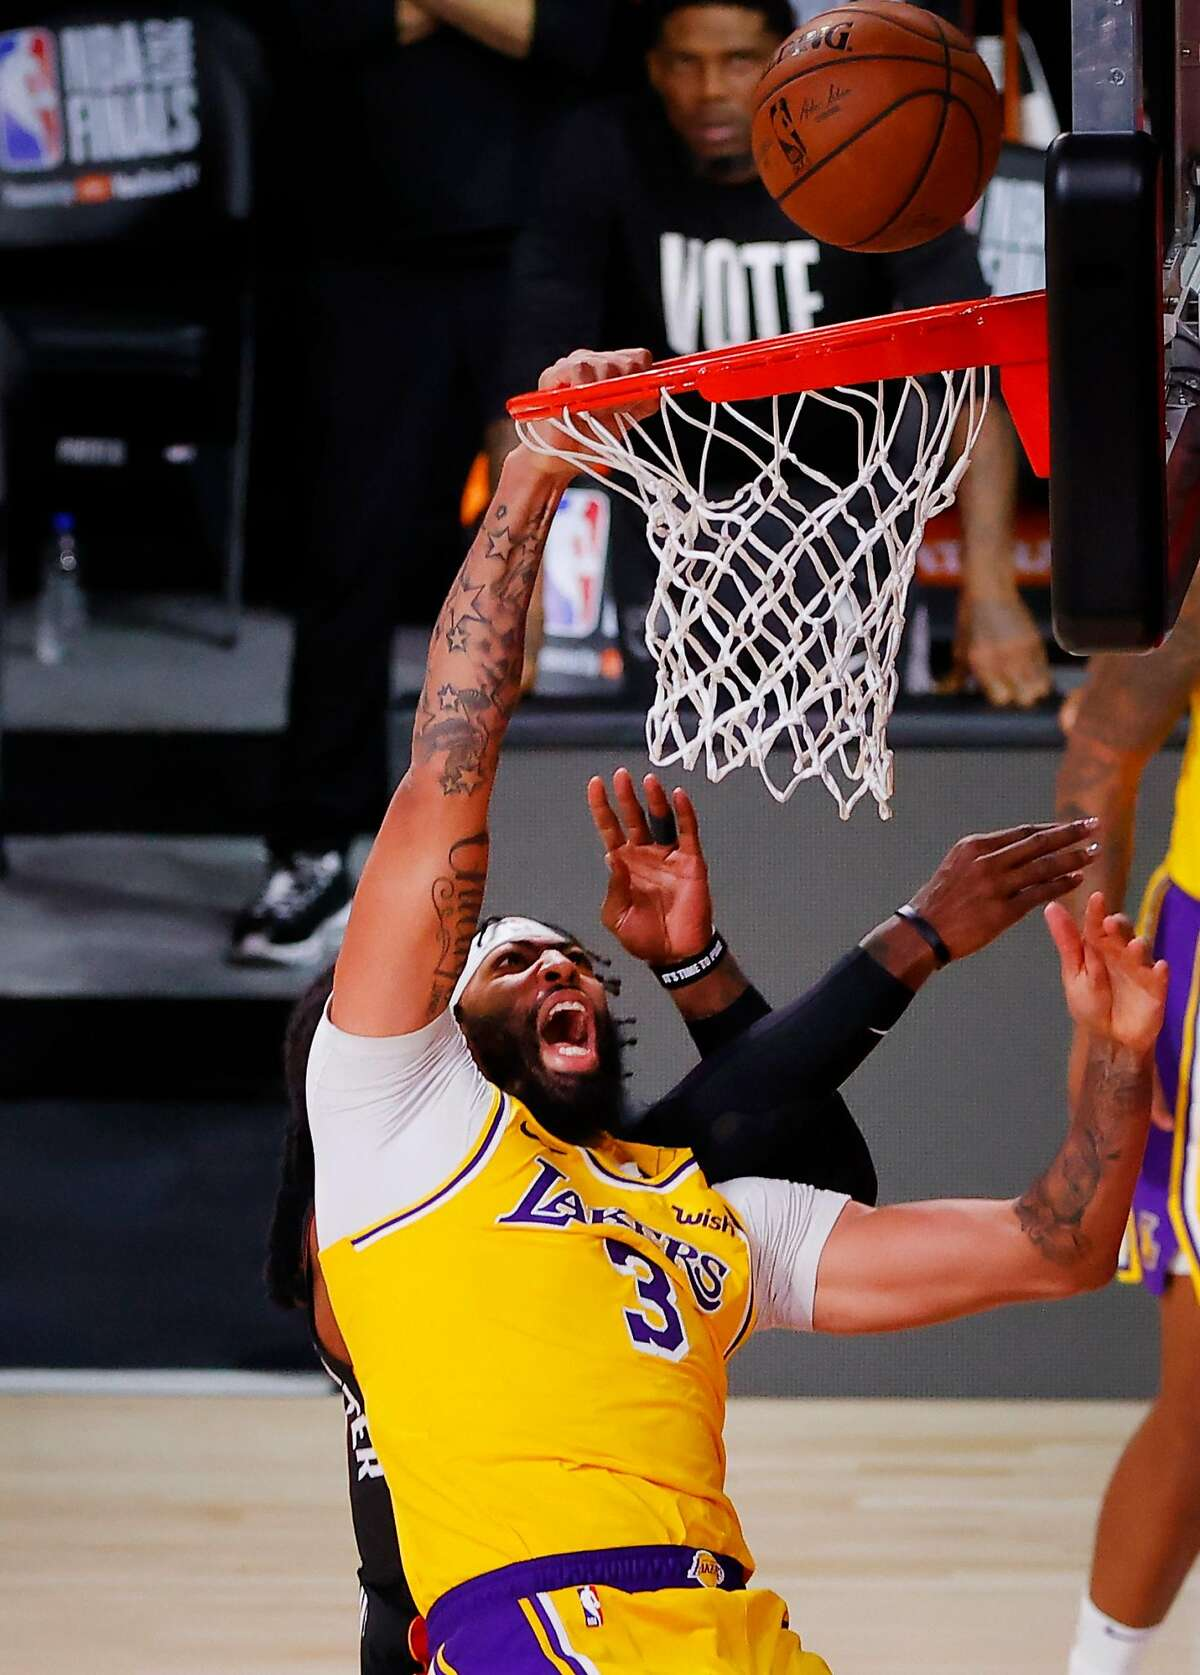 Lakers forward Anthony Davis is fouled during the fourth quarter against the Heat. He scored 34 points.